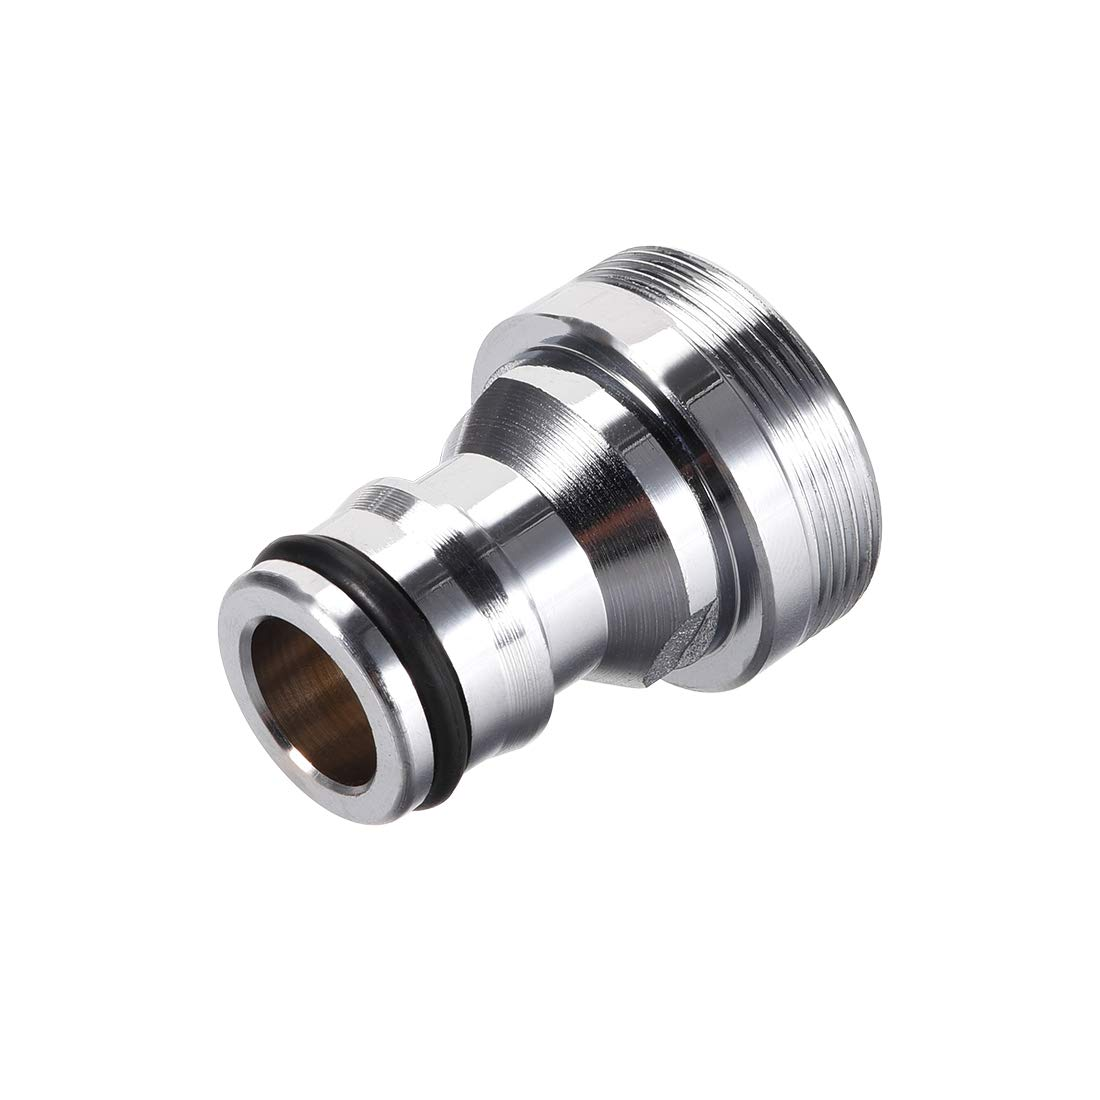 Brass Faucet Tap Quick Connector M24 UNF Male Thread Hose Pipe Adapter Fitting